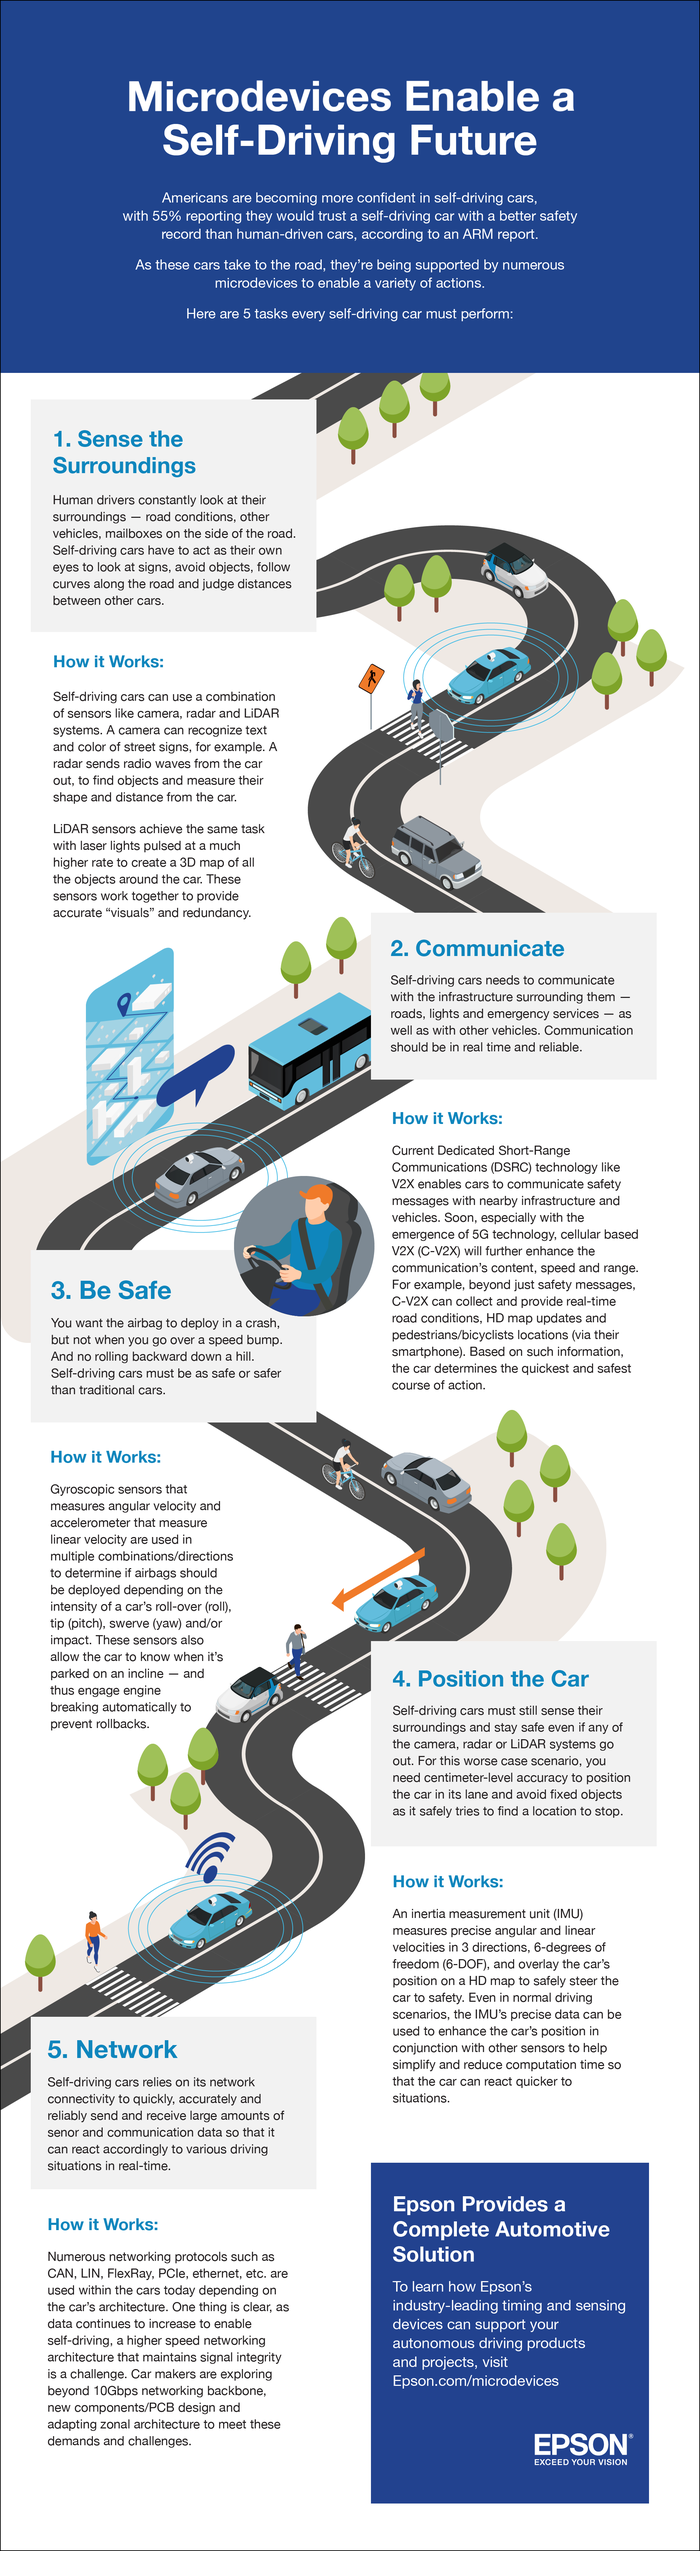 Microdevices Enable a Self-Driving Future